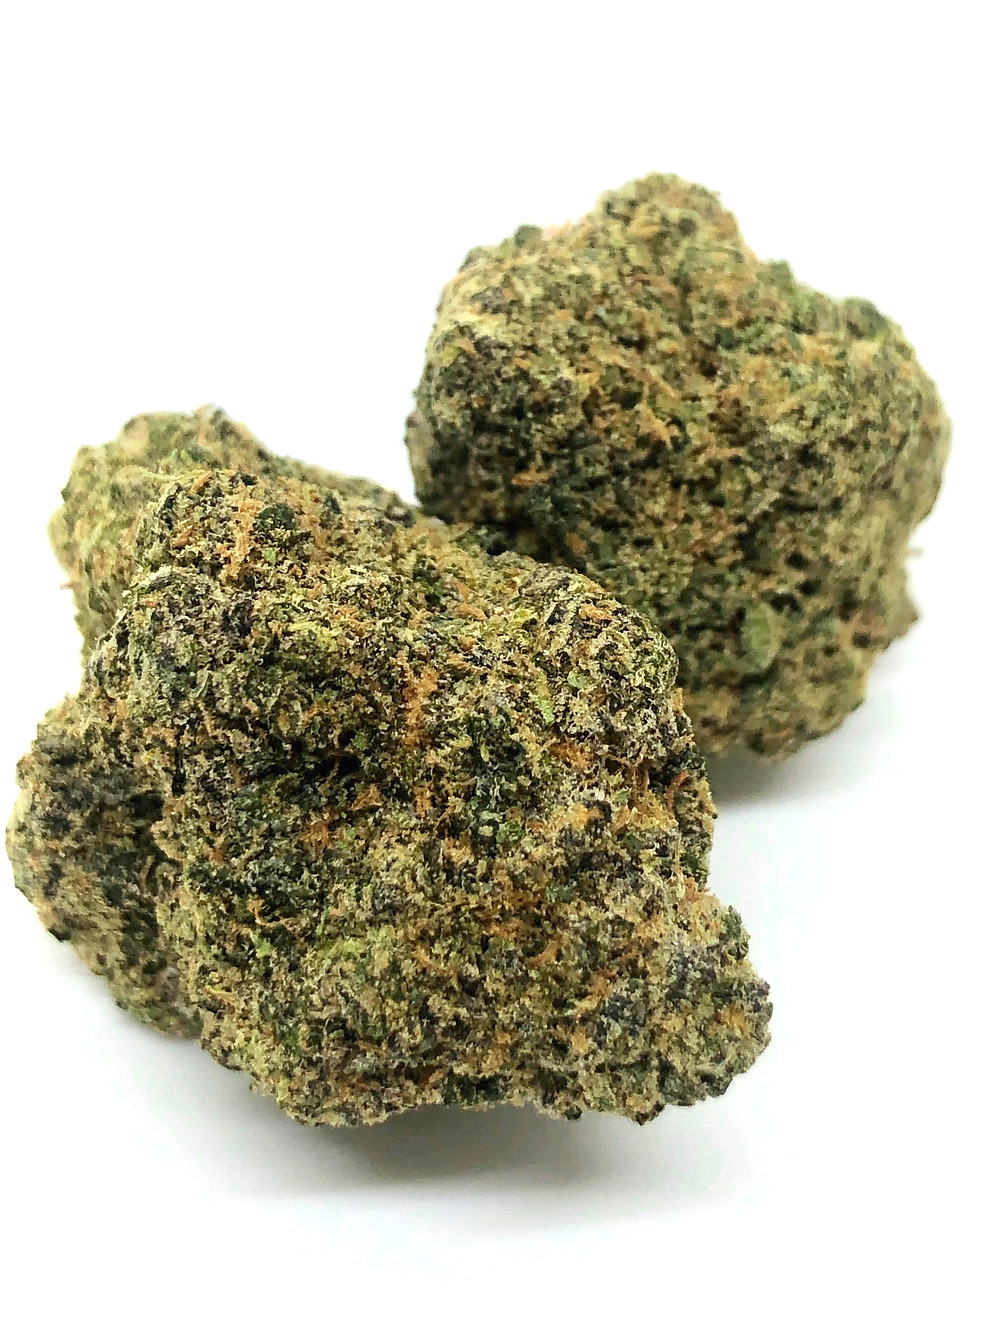 Gelato-74-indica-heavy-hybrid-review-dc-weed-buds-image